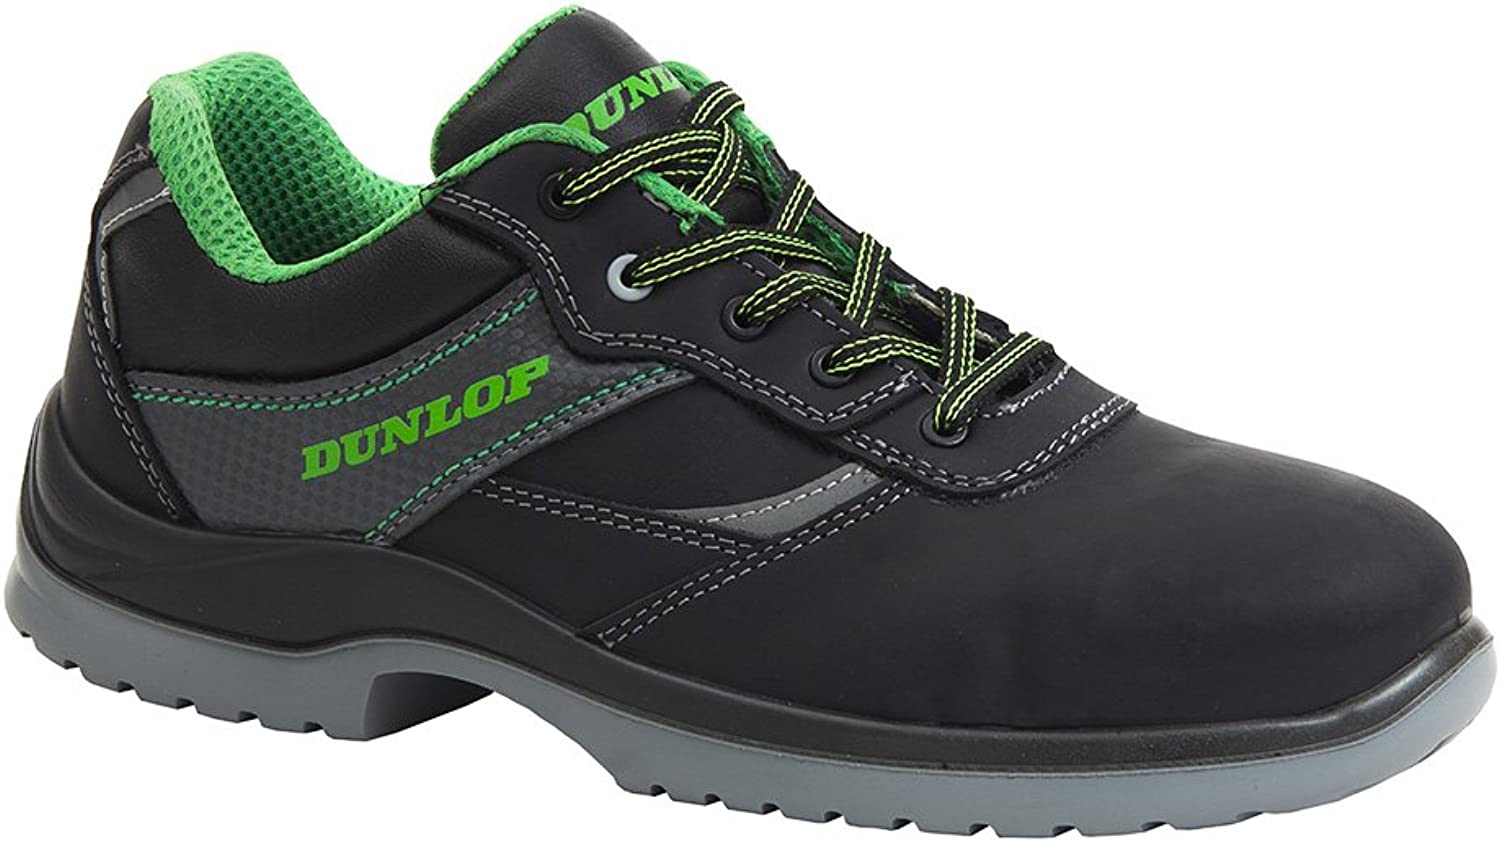 Dunlop First One Low - S3 SRC predective work shoes in black - EN safety certified